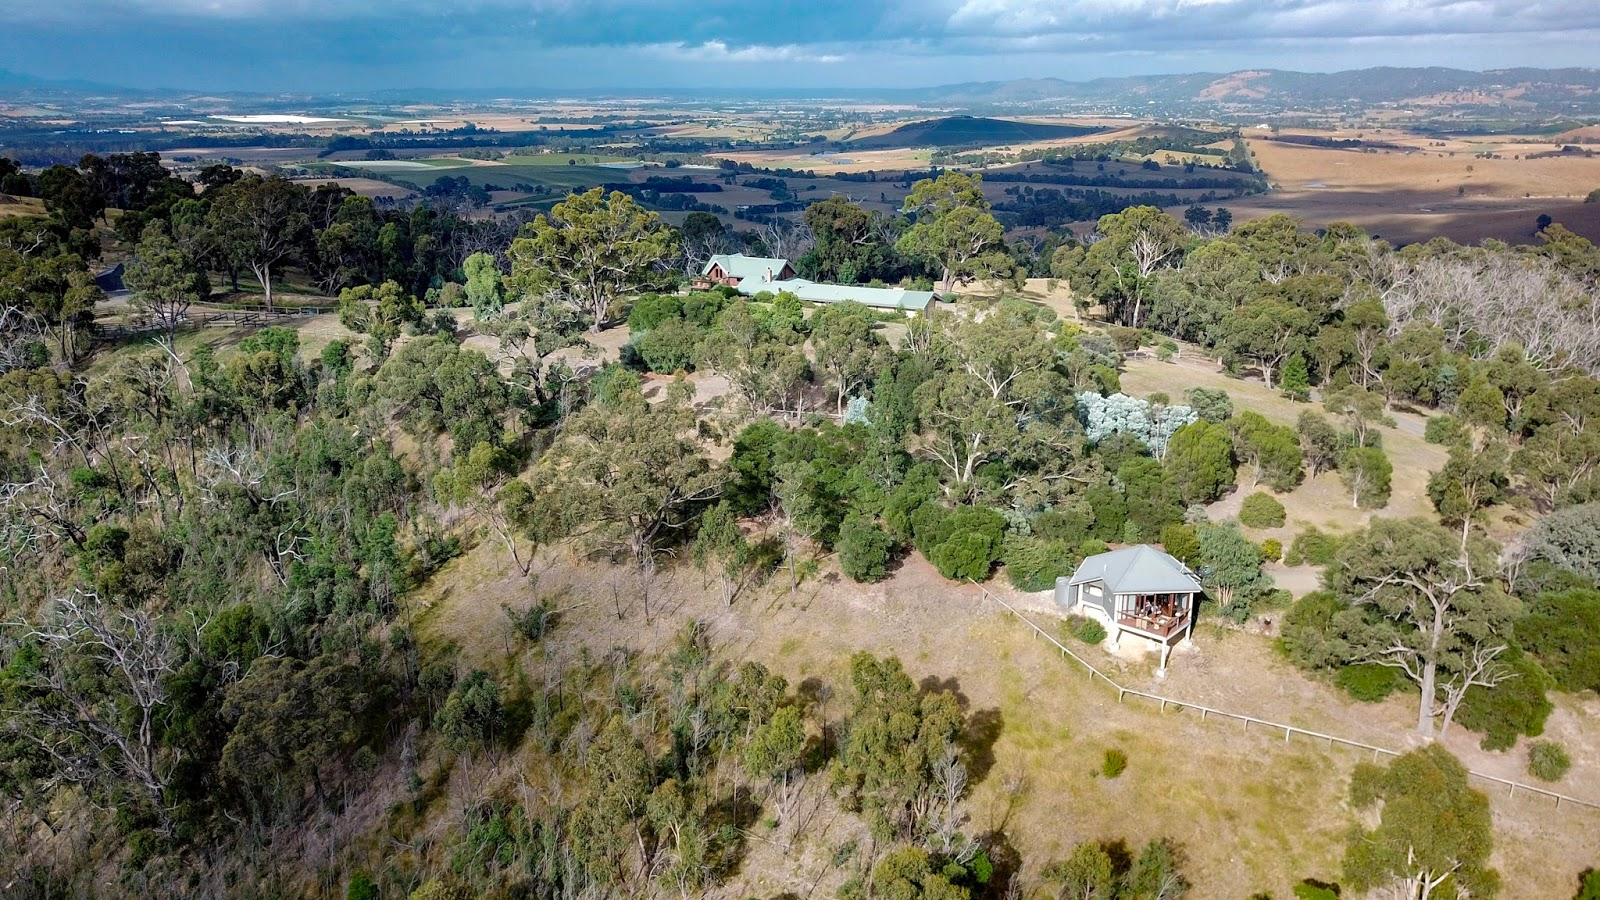 aerial view of kangaroo ridge retreat